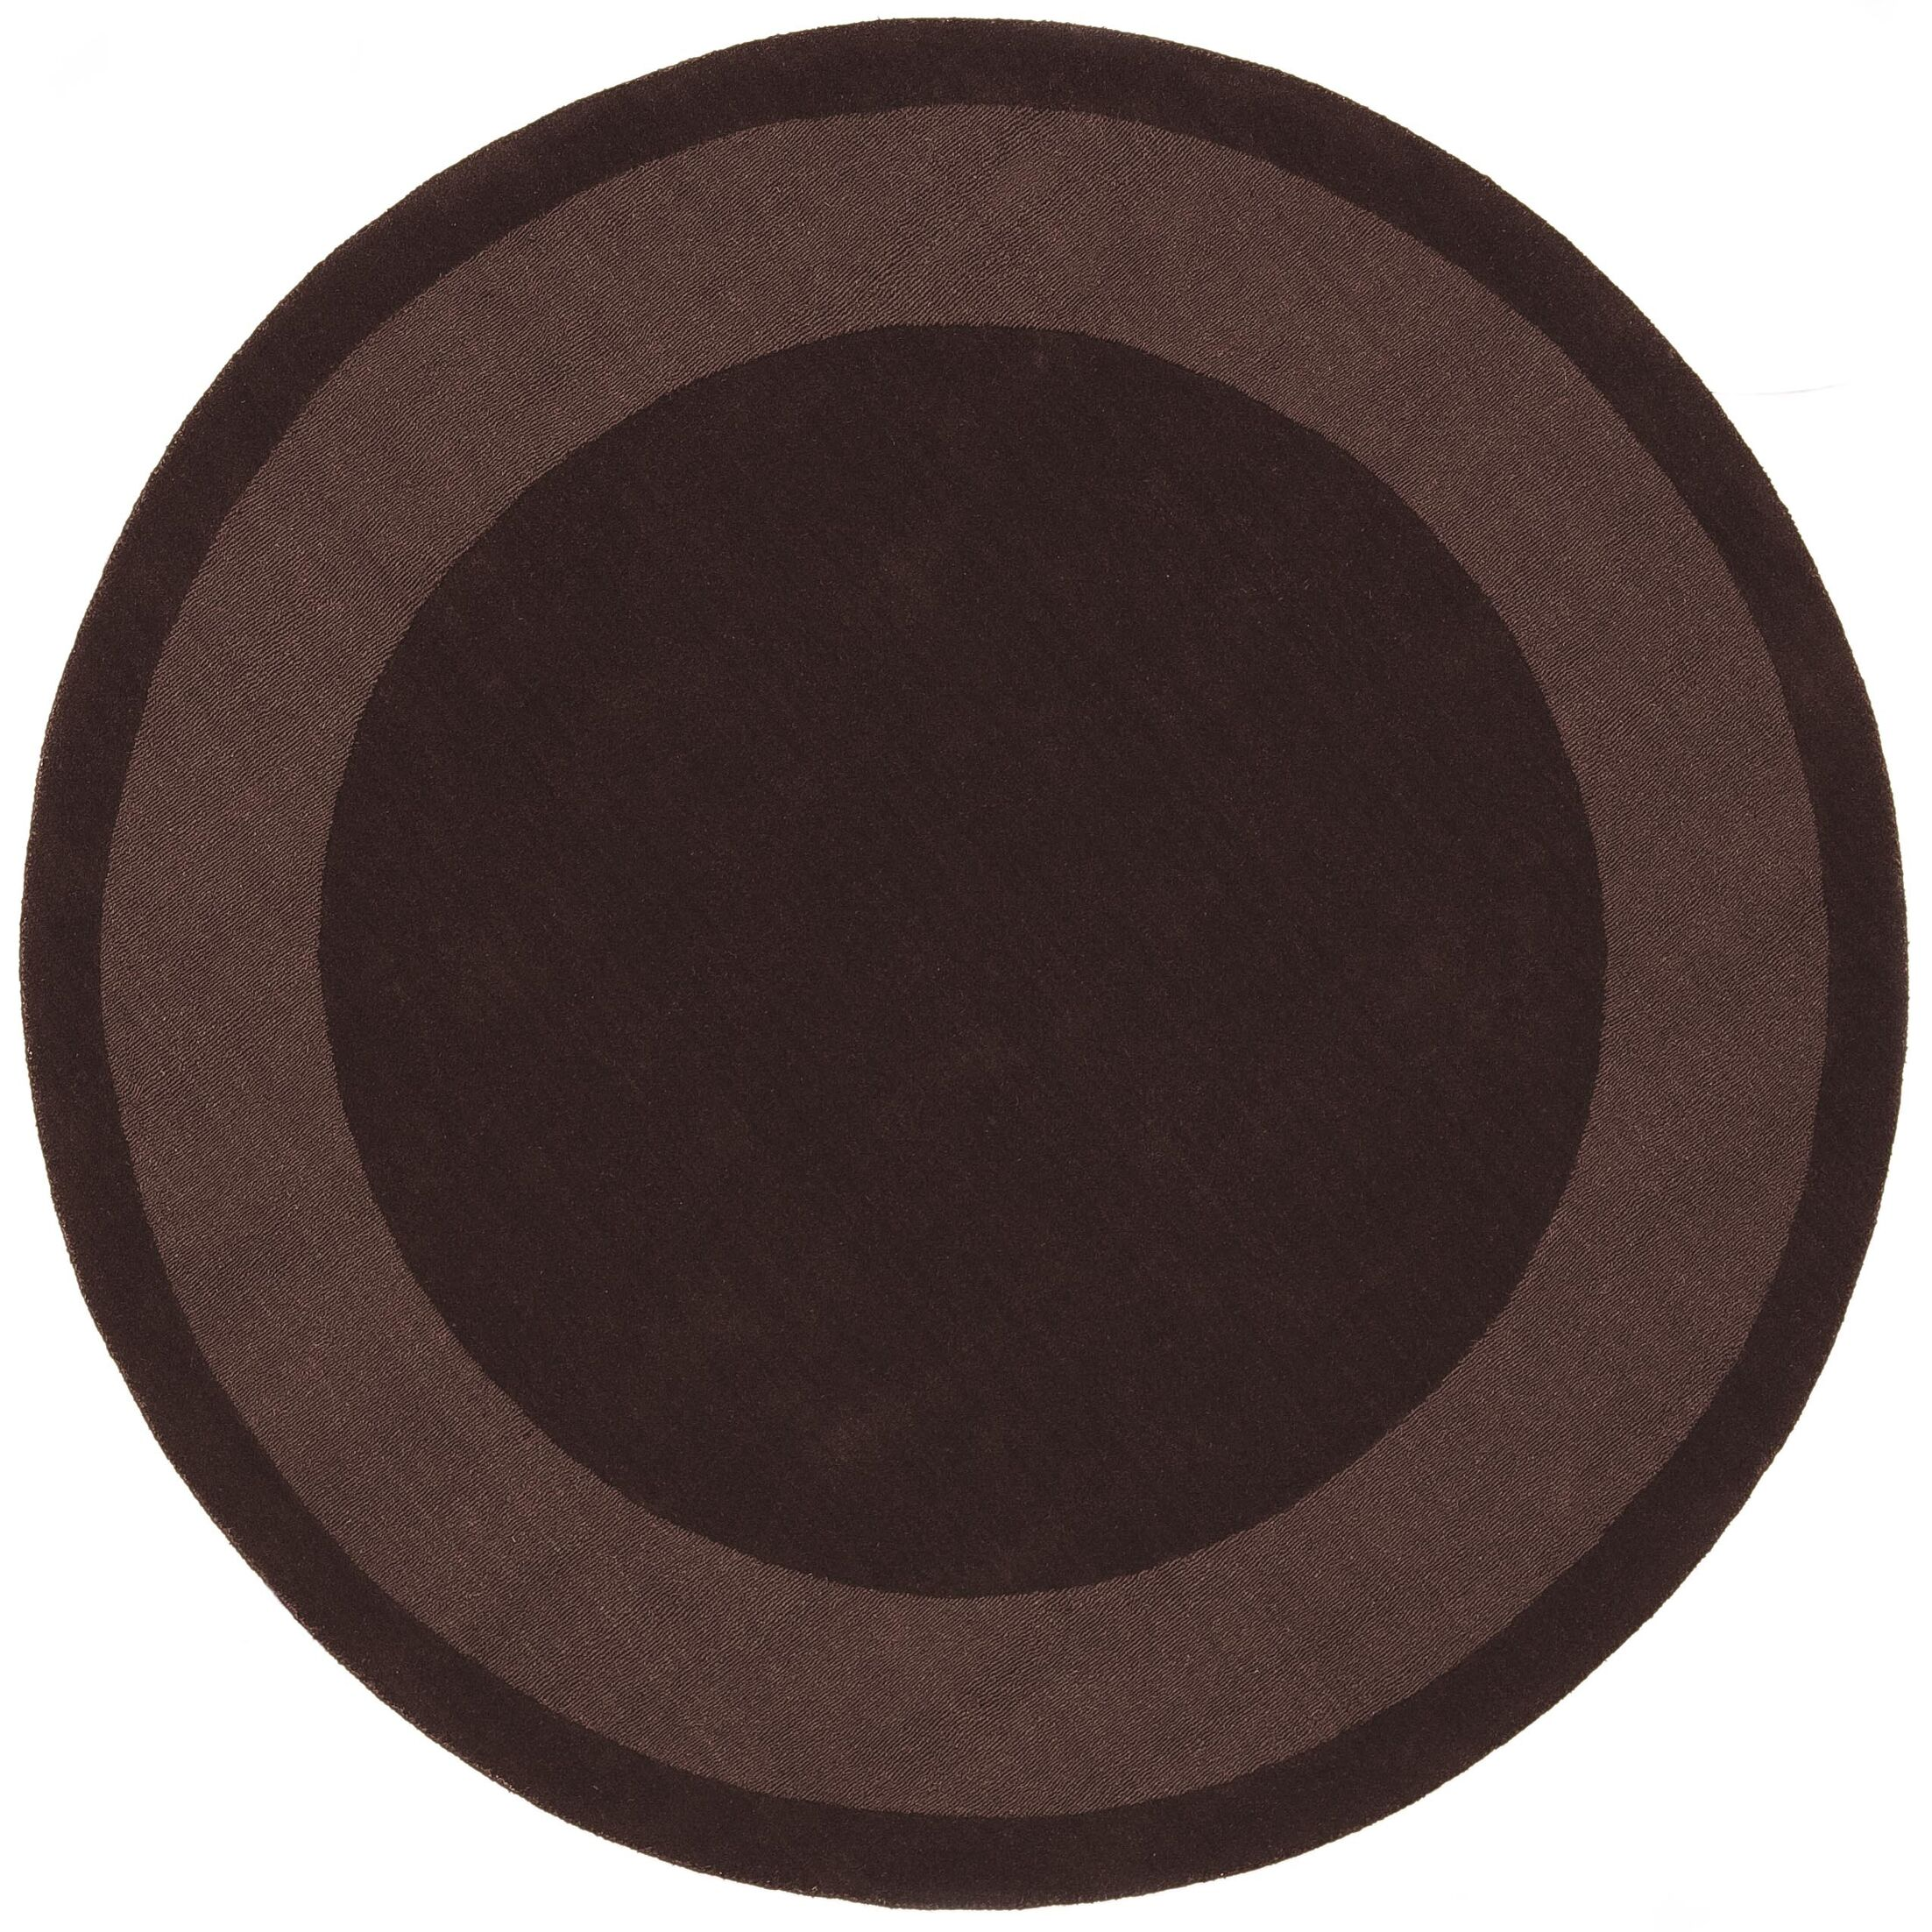 Transitions Chocolate Border Rug Rug Size: Round 6'